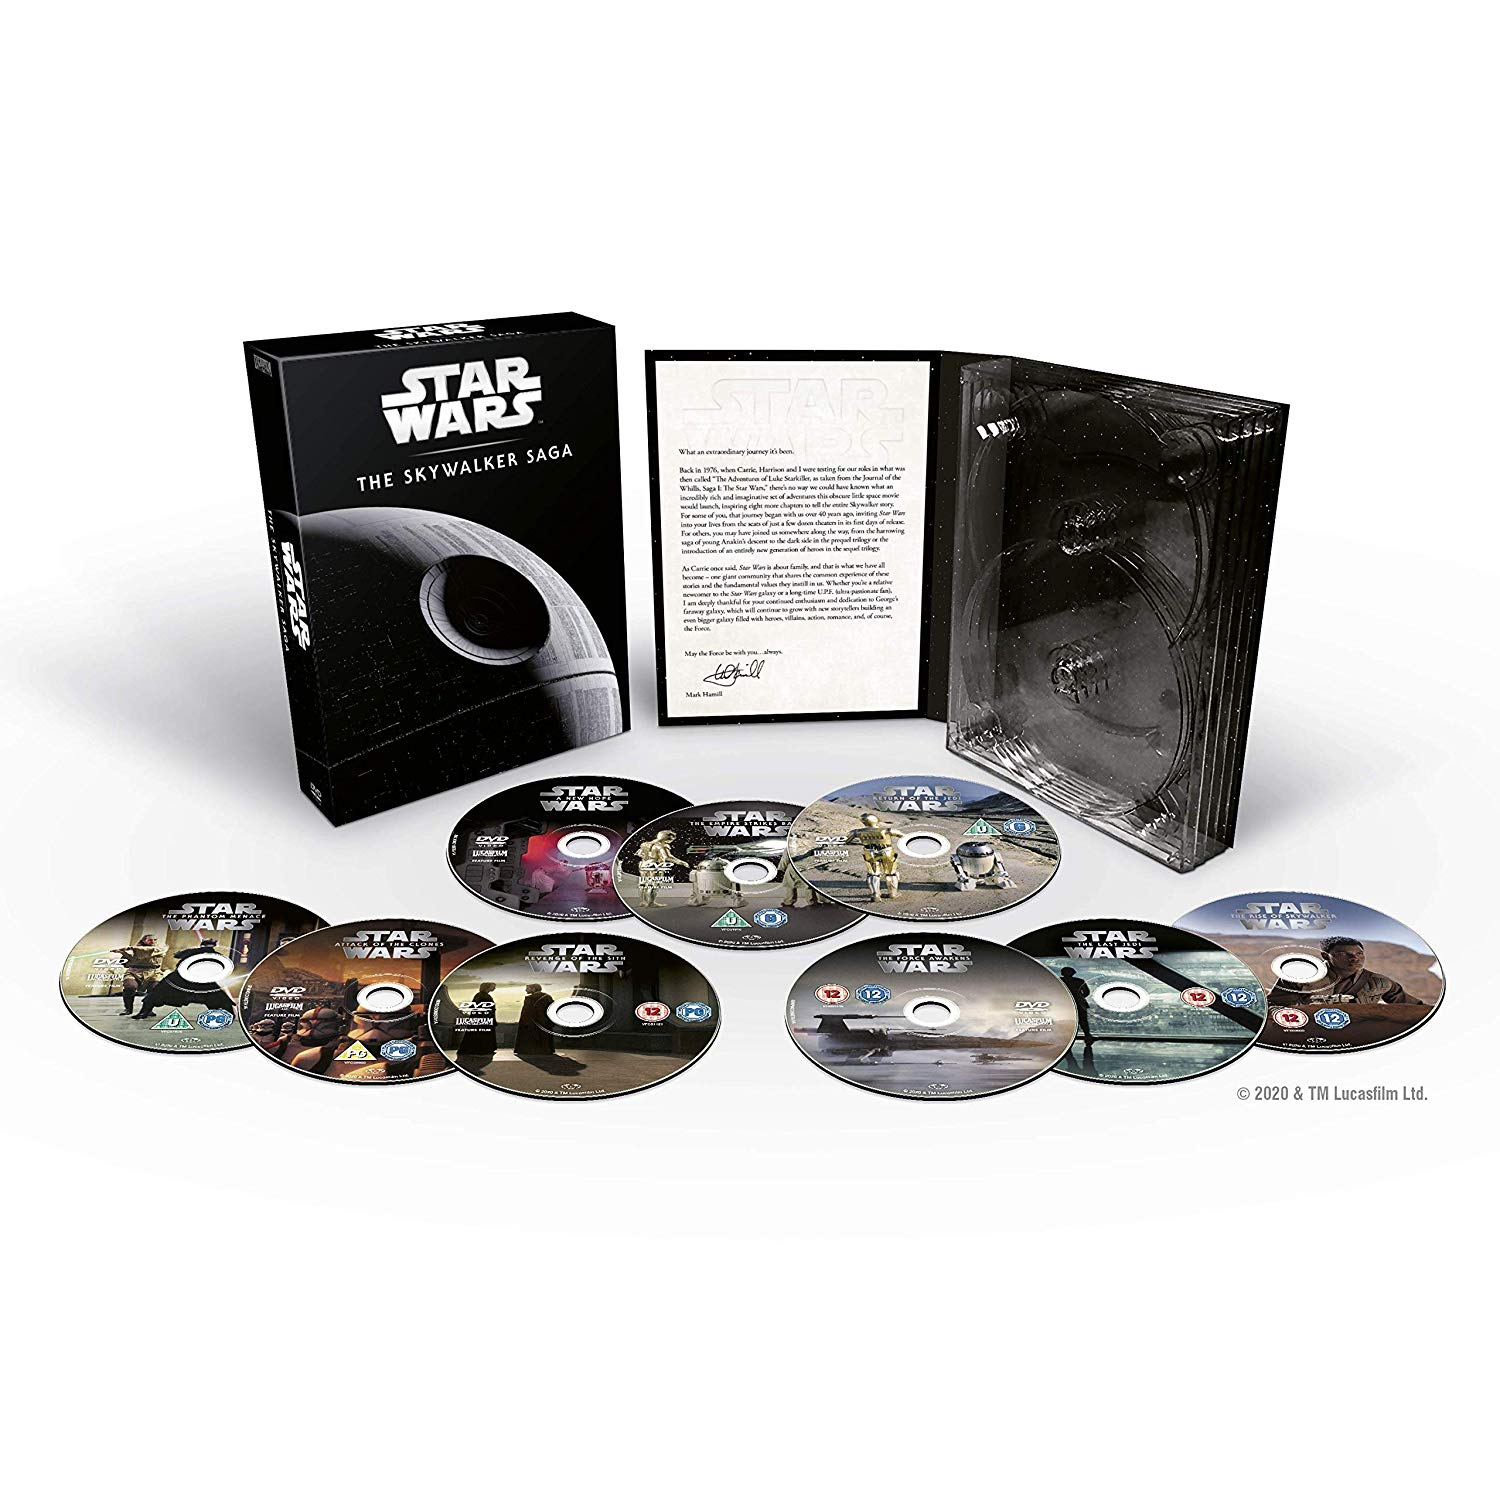 Star Wars: The Skywalker Saga (DVD)